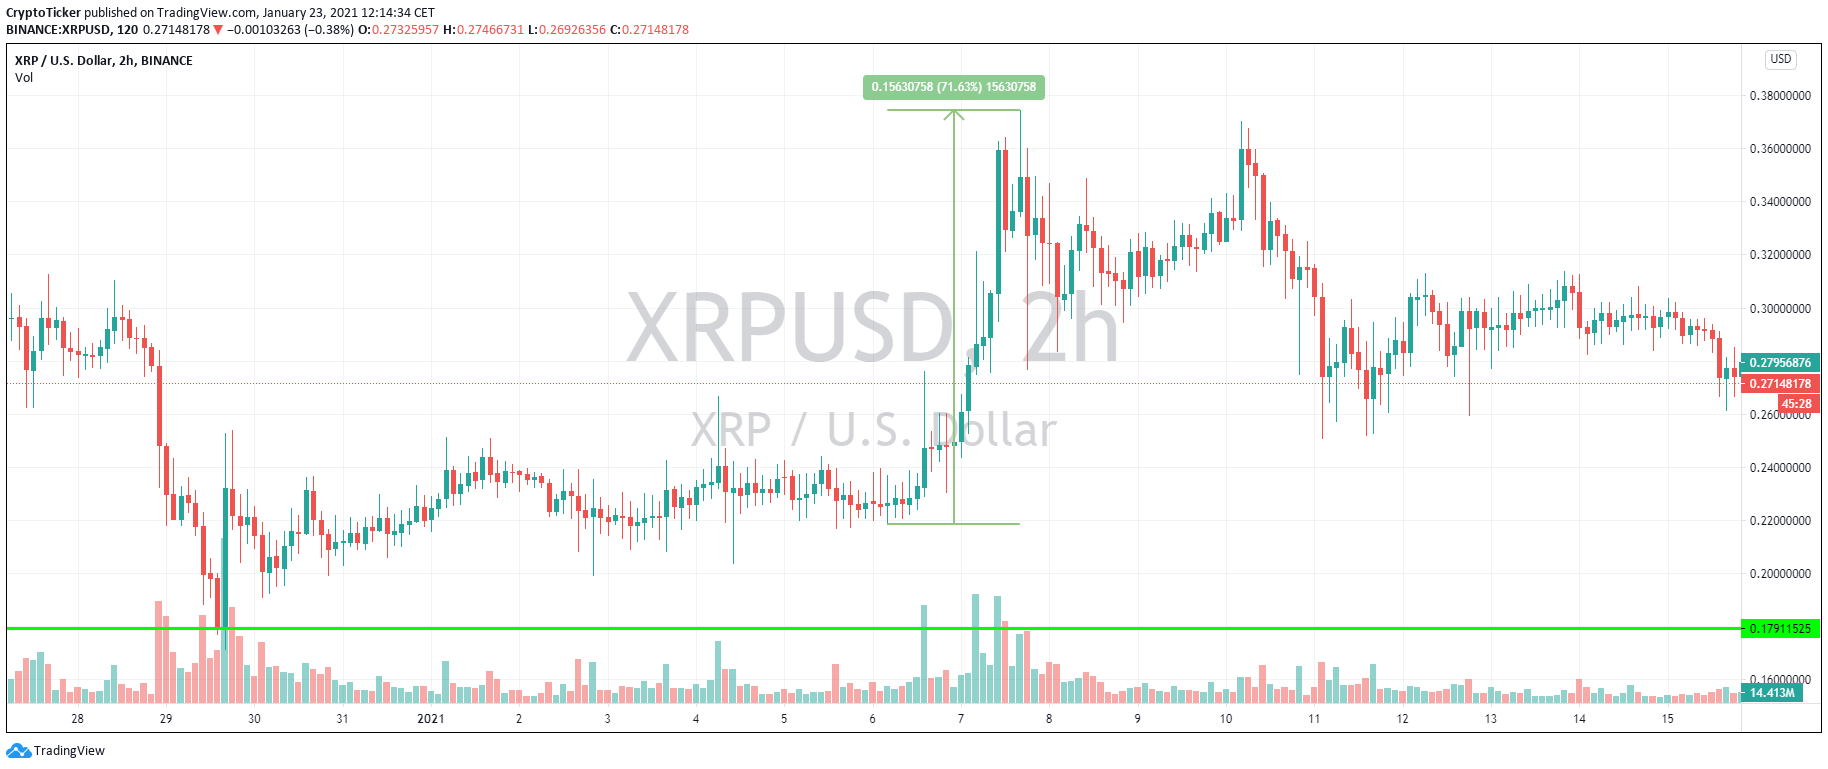 XRP/USD 2-hour chart showing a price hike for XRP of 71%